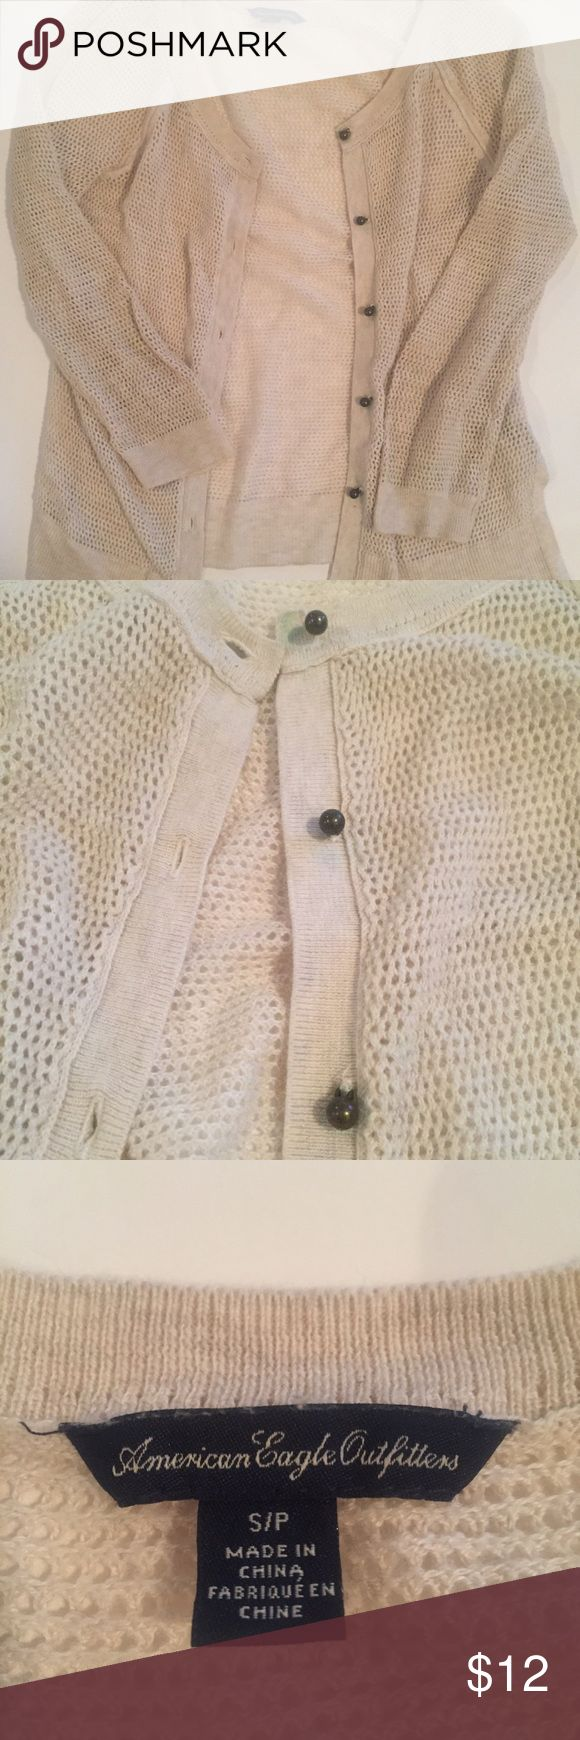 American Eagle cardigan This is light beige cardigan from American Eagle. It is a size small and perfect for warm weather! American Eagle Outfitters Sweaters Cardigans #americaneagleoutfitters